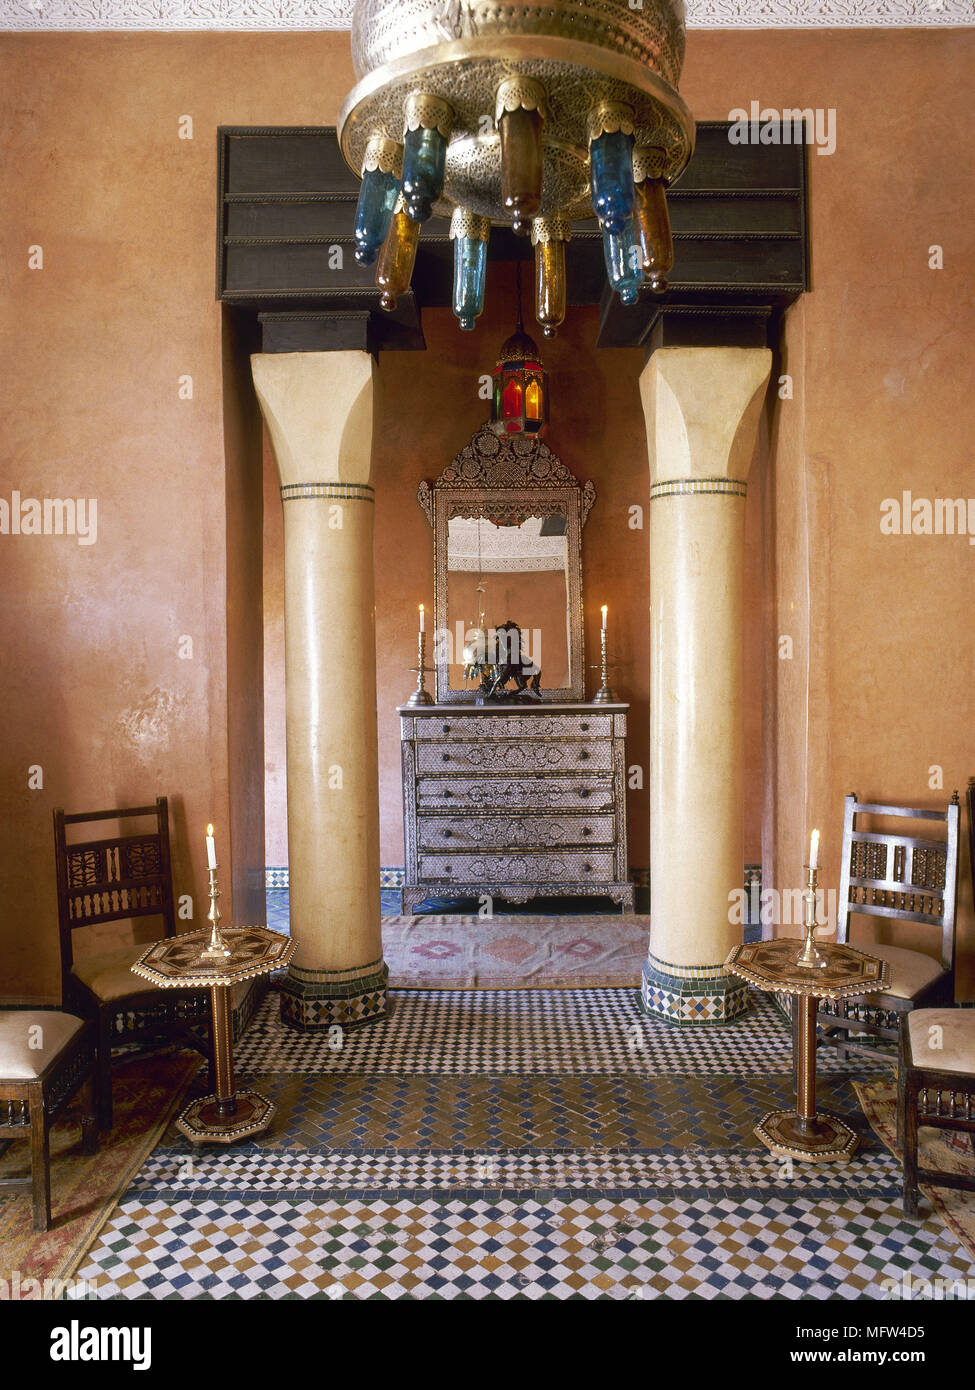 Arabic Style Terracotta Hallway With Mosaic Tile Floor And Marble